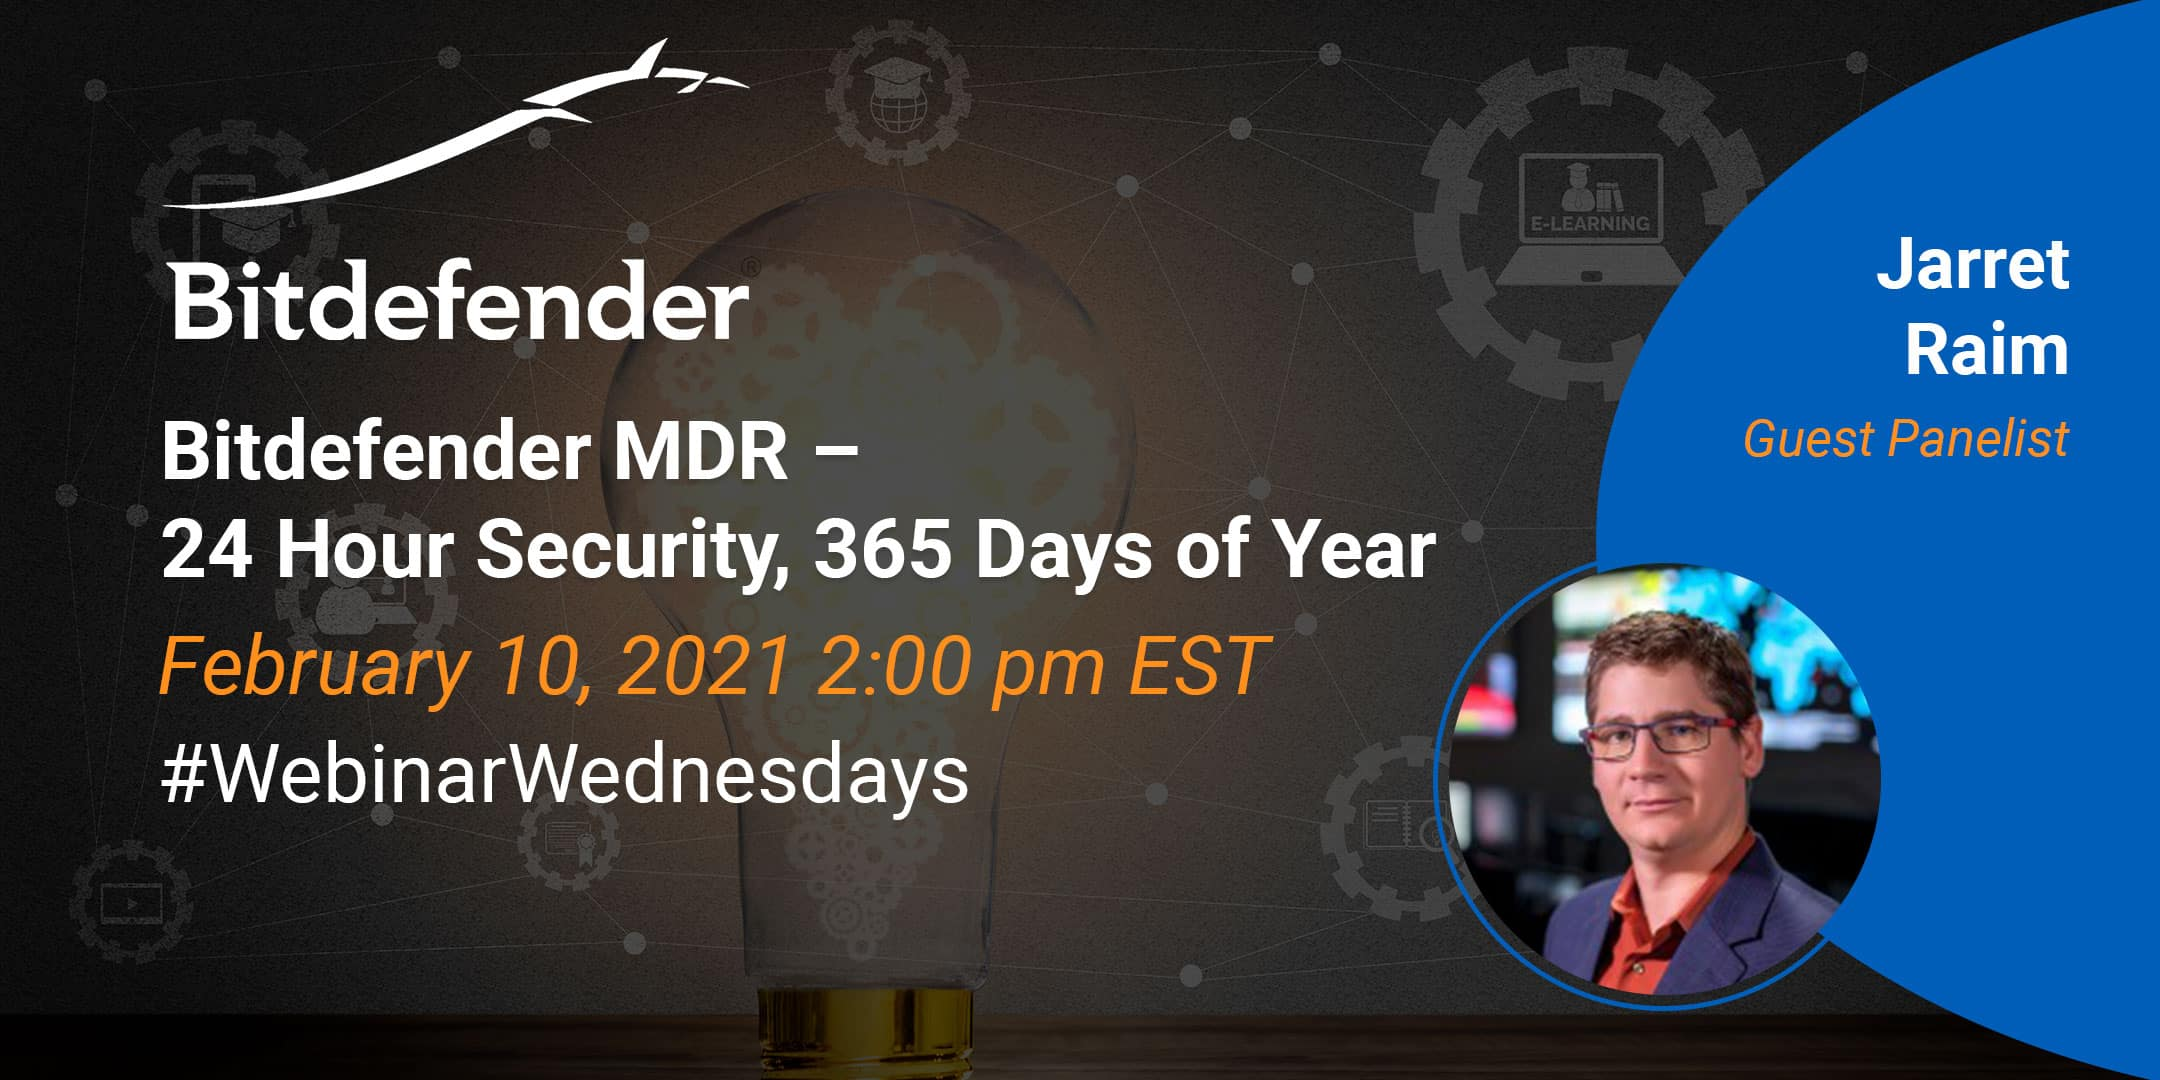 Bitdefender MDR – 24 Hour Security, 365 Days of Year